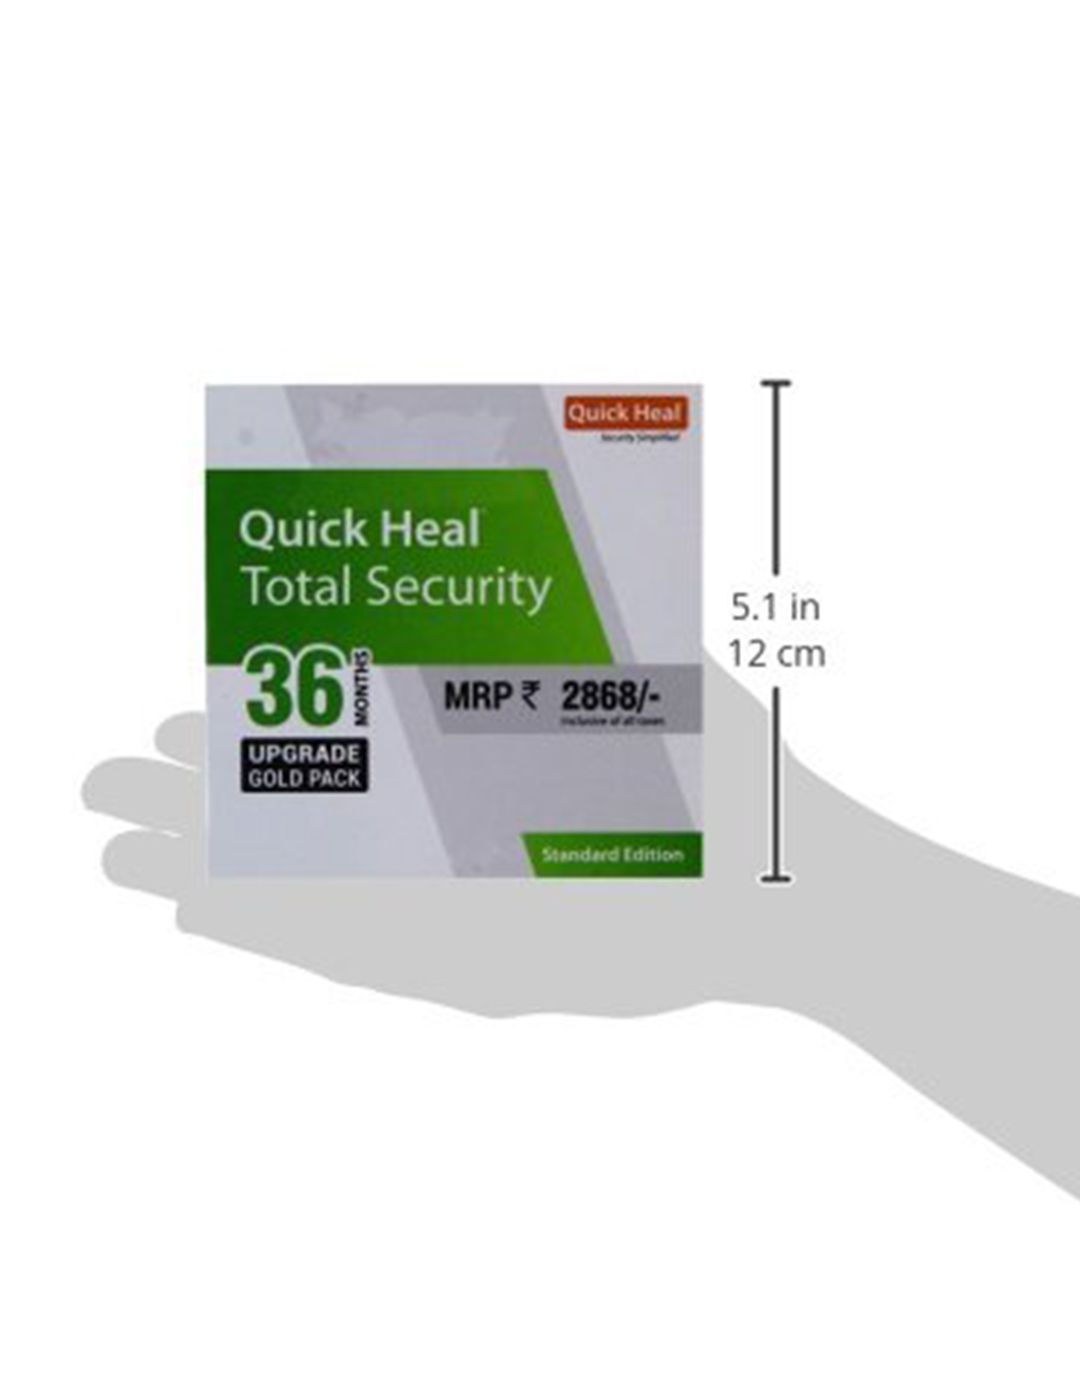 Quick Heal Total Security 1 PC